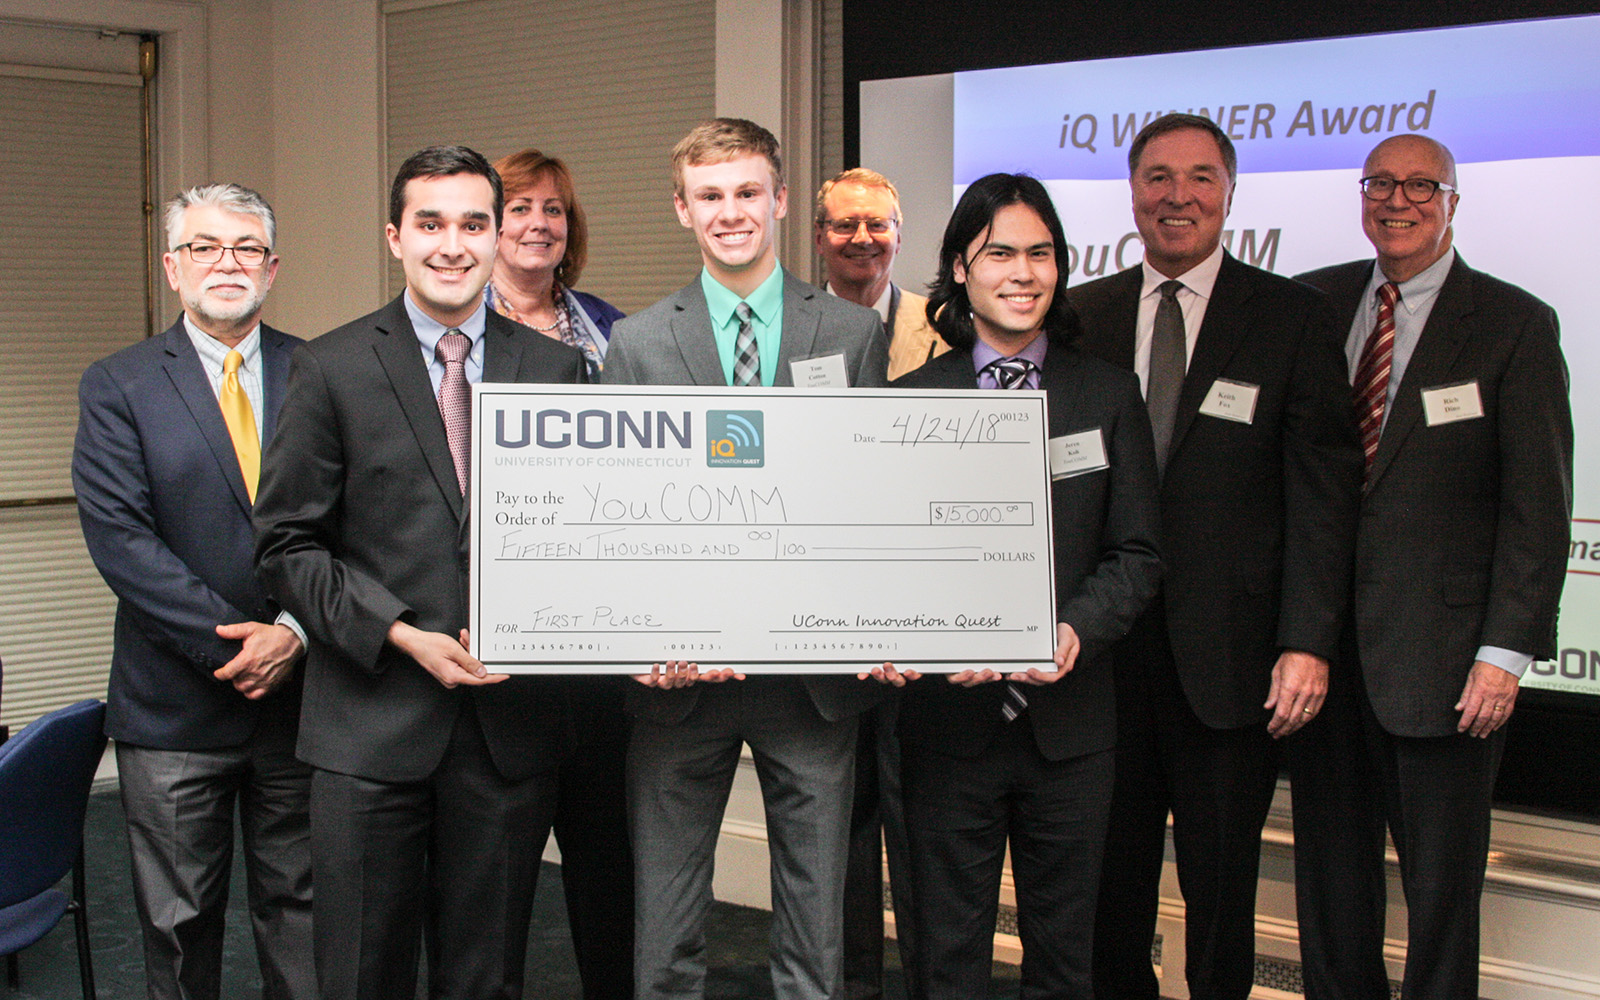 From left, Kazem Kazerounian, dean of the School of Engineering; YouCOMM co-founder Daniel Yasoshima; Lucy Gilson, head of the Management Department; YouCOMM co-founder Tom Cotton; Provost Craig Kennedy; student Jeren Koh; UConn iQ founder Keith Fox '80 and iQ Director Professor Rich Dino pose for a photo after the announcement that YouCOMM won the grand prize. (Nicolle Anderson/UConn School of Business)